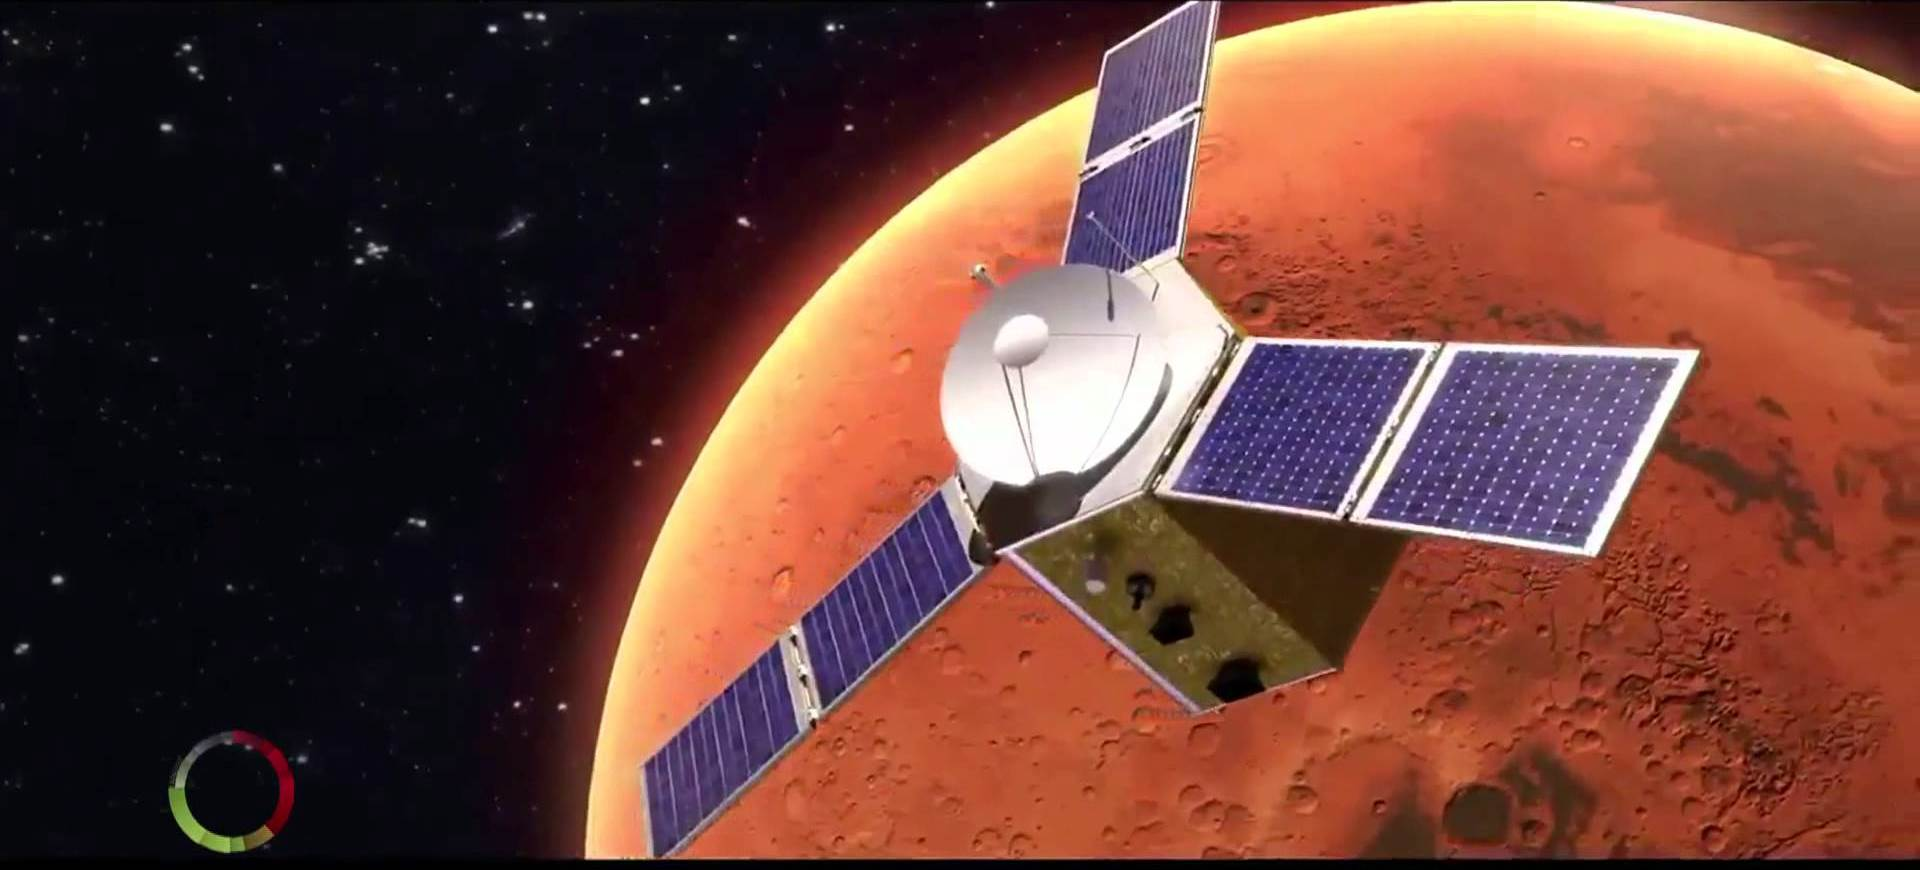 Uae Will Launch Its First Mission To Mars In 2021